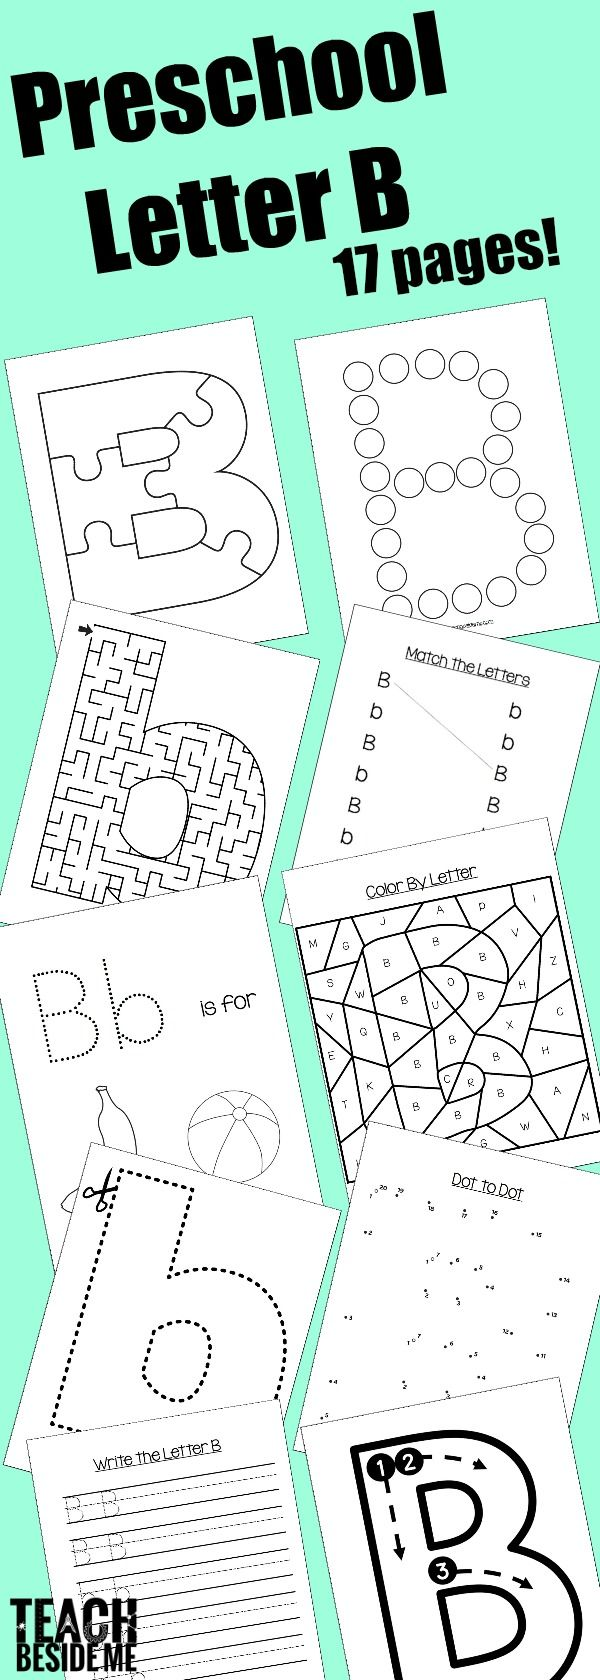 Letter of the week! Preschool Letter B Activities- 17 pages of Letter B Printables, Letter B snack, Preschool Letter B Book list, Letter B Craft, and more!  via @karyntripp